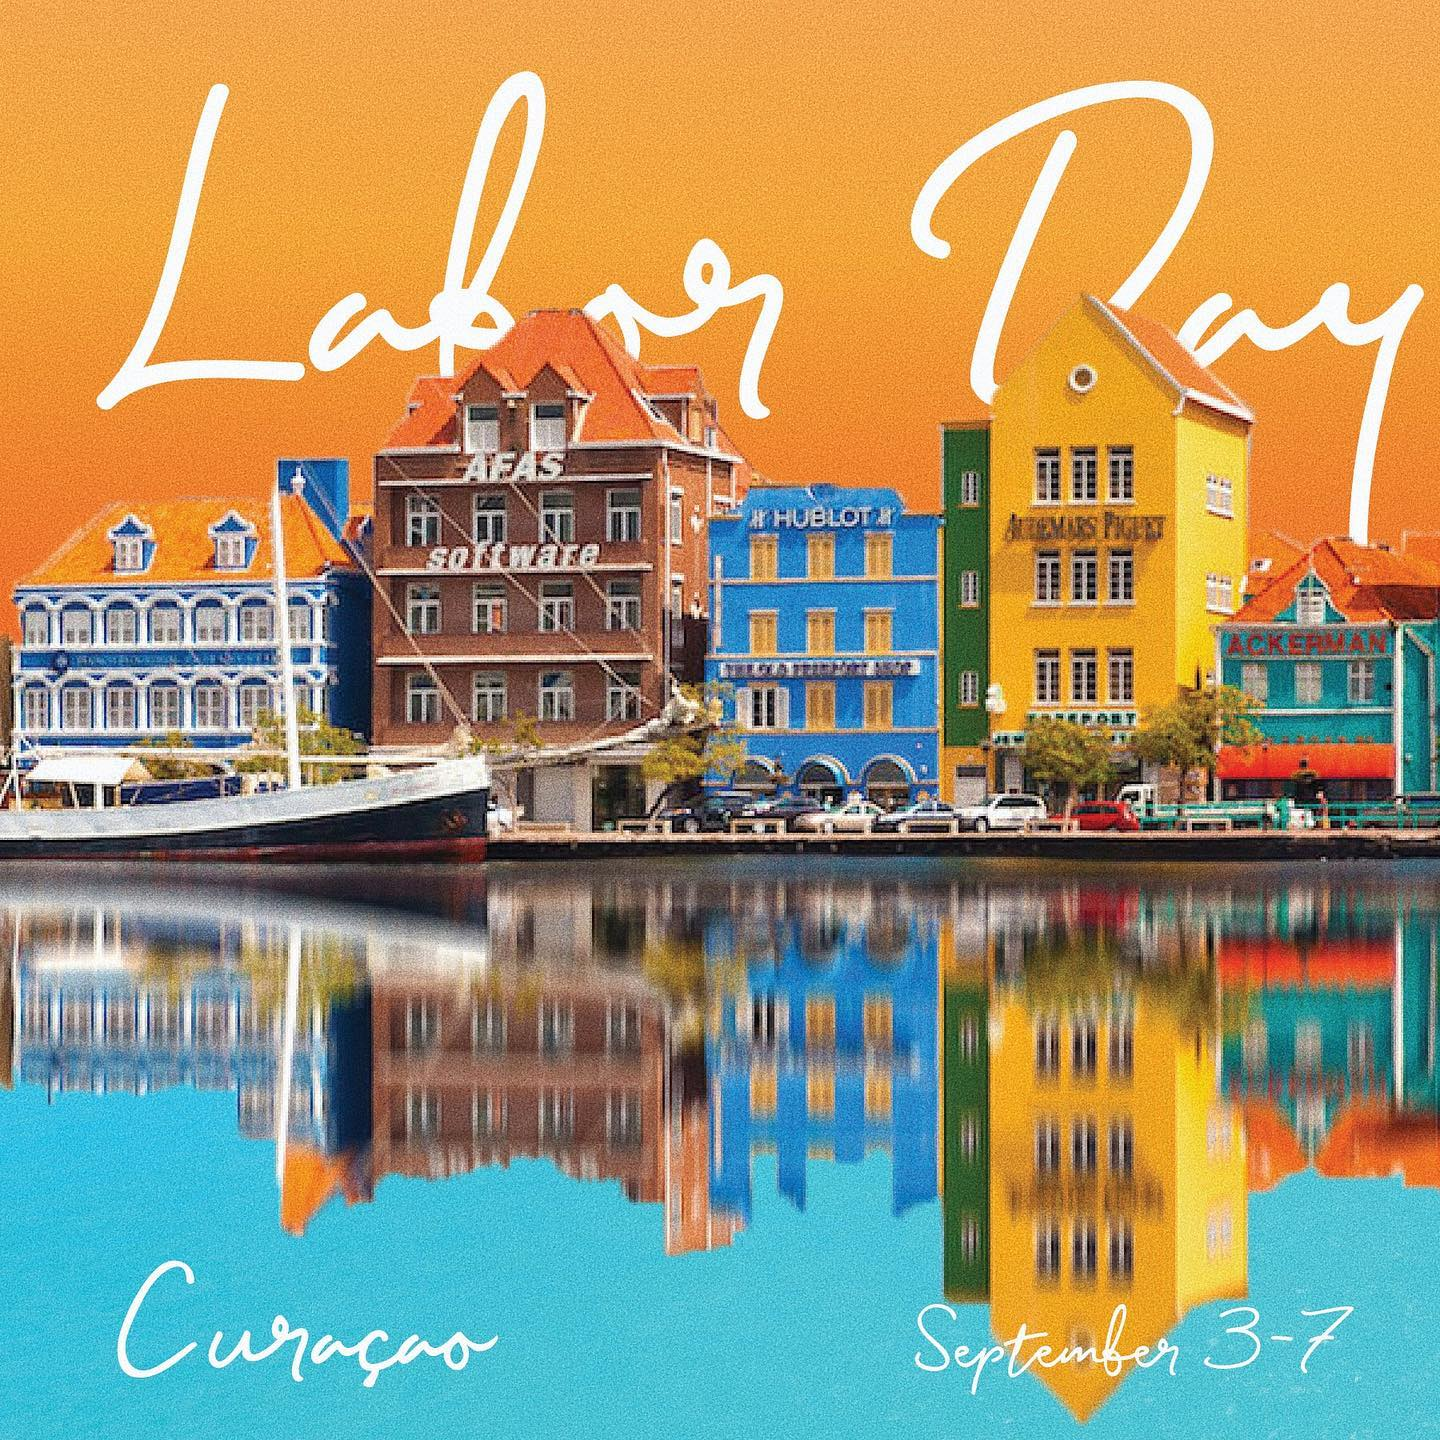 Curacao || Labor Day Weekend